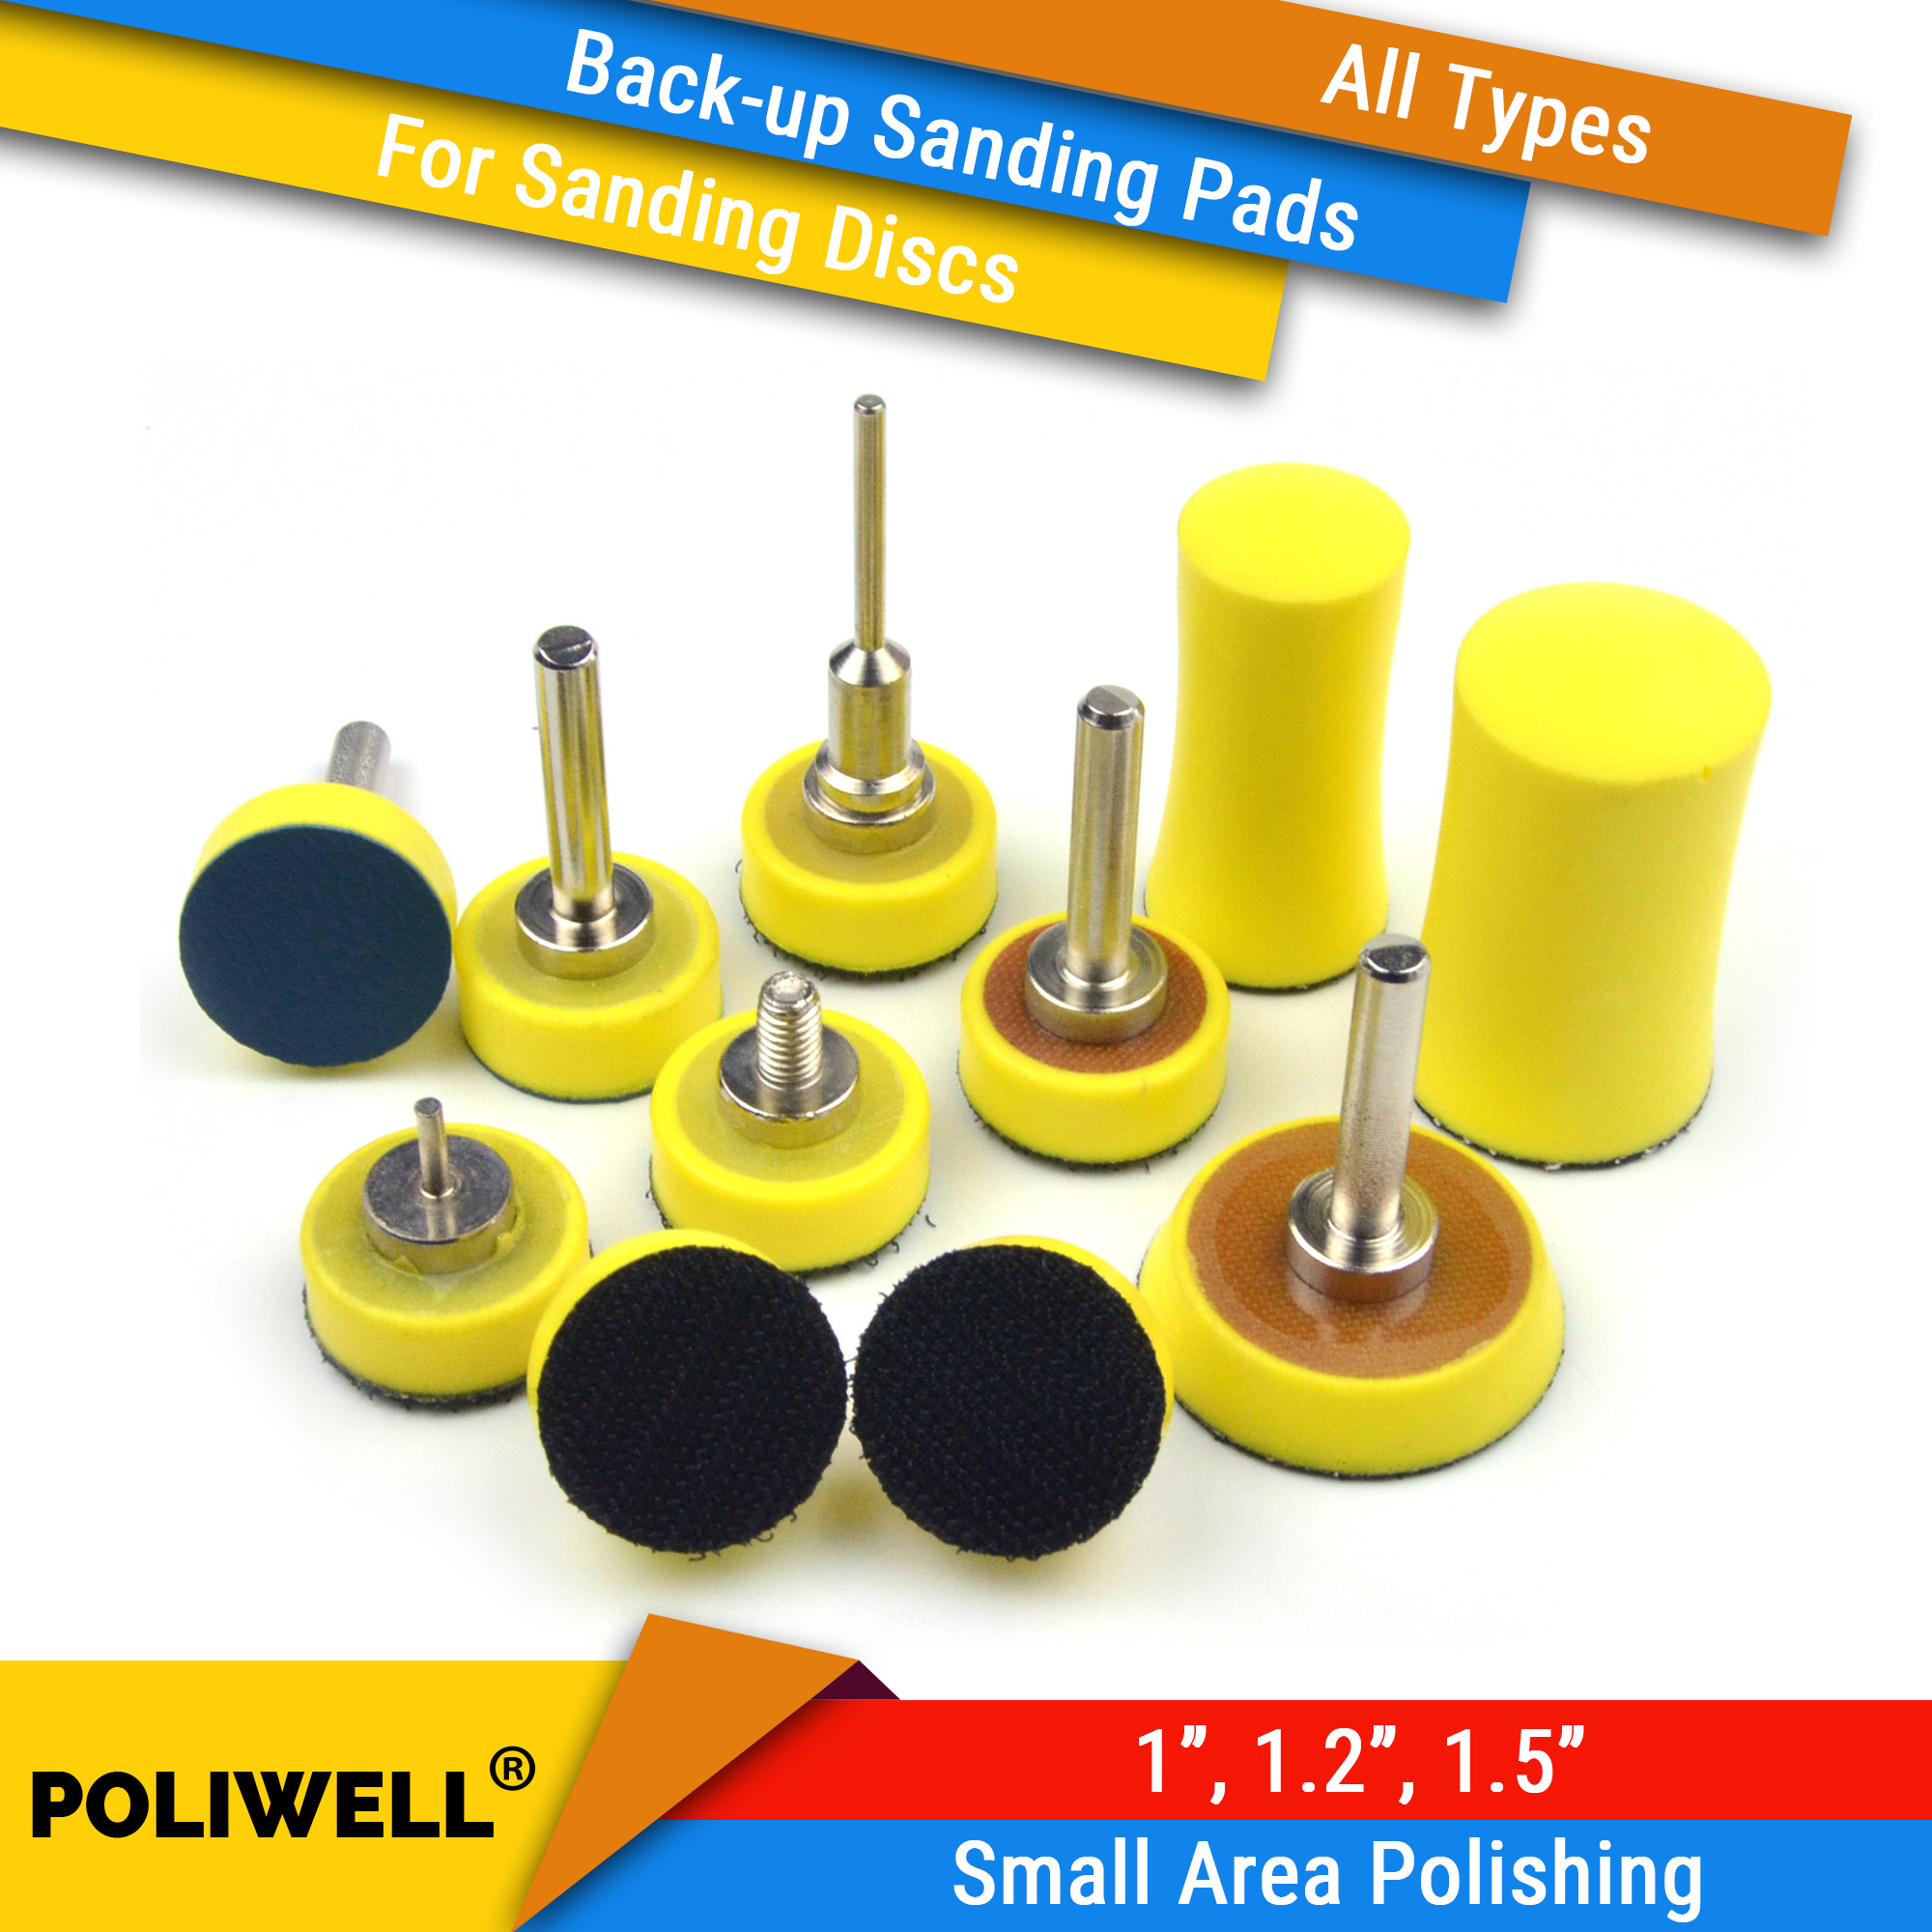 1/1.2/1.5 Inch All Types Back-up Sanding Pads For Abrasive Sandpaper Sanding Discs For Woodworking Small Area Polishing